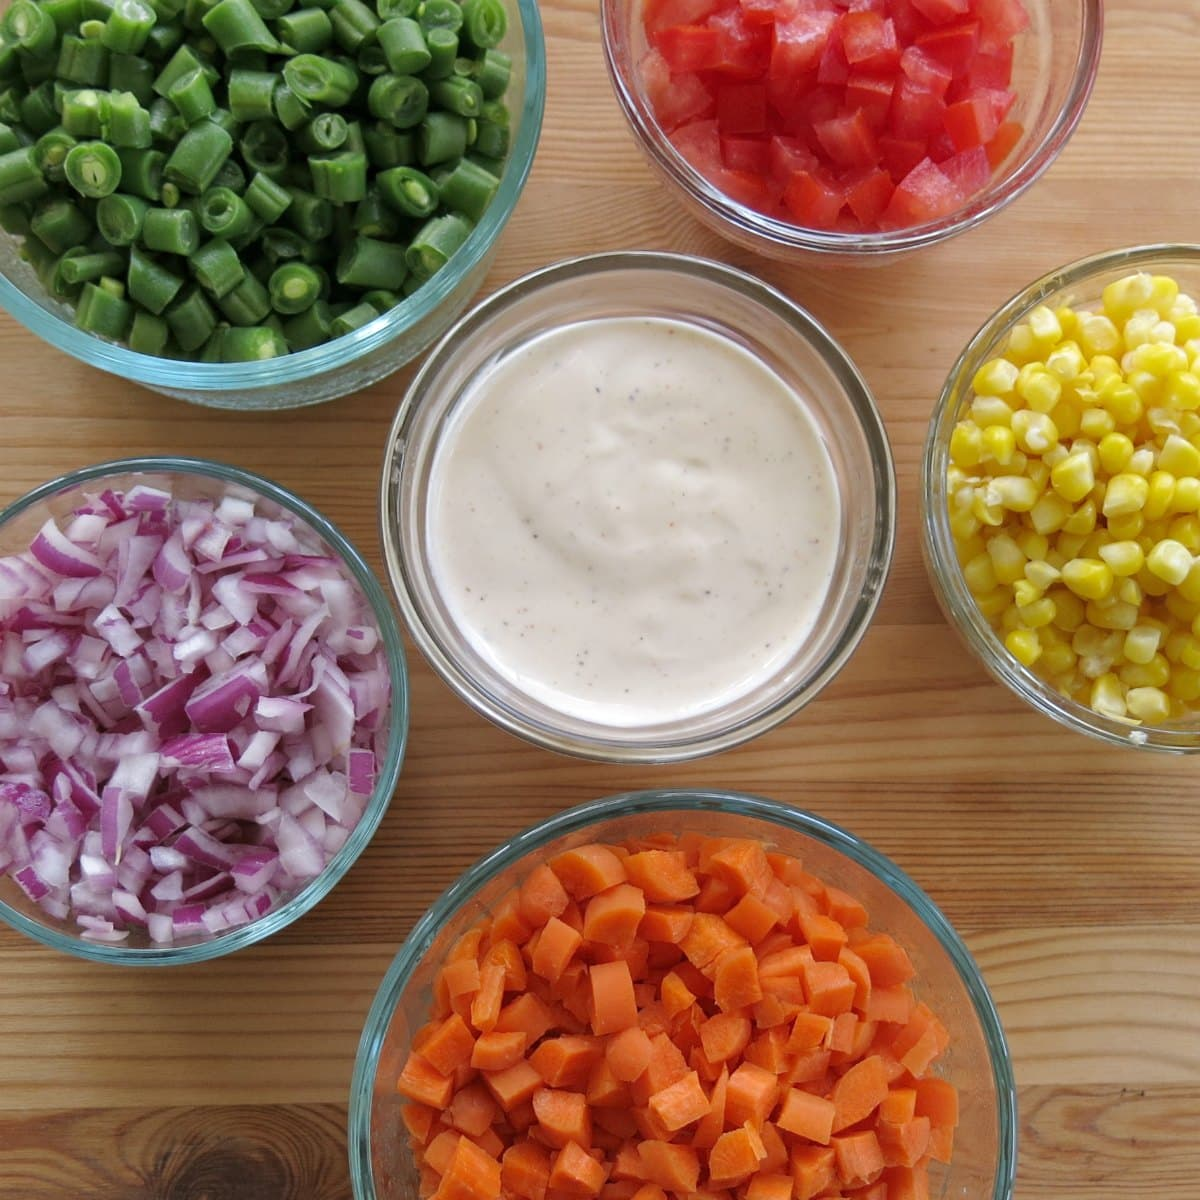 Small bowls with finely chopped vegetables surrounding a bowl of ranch dressing.